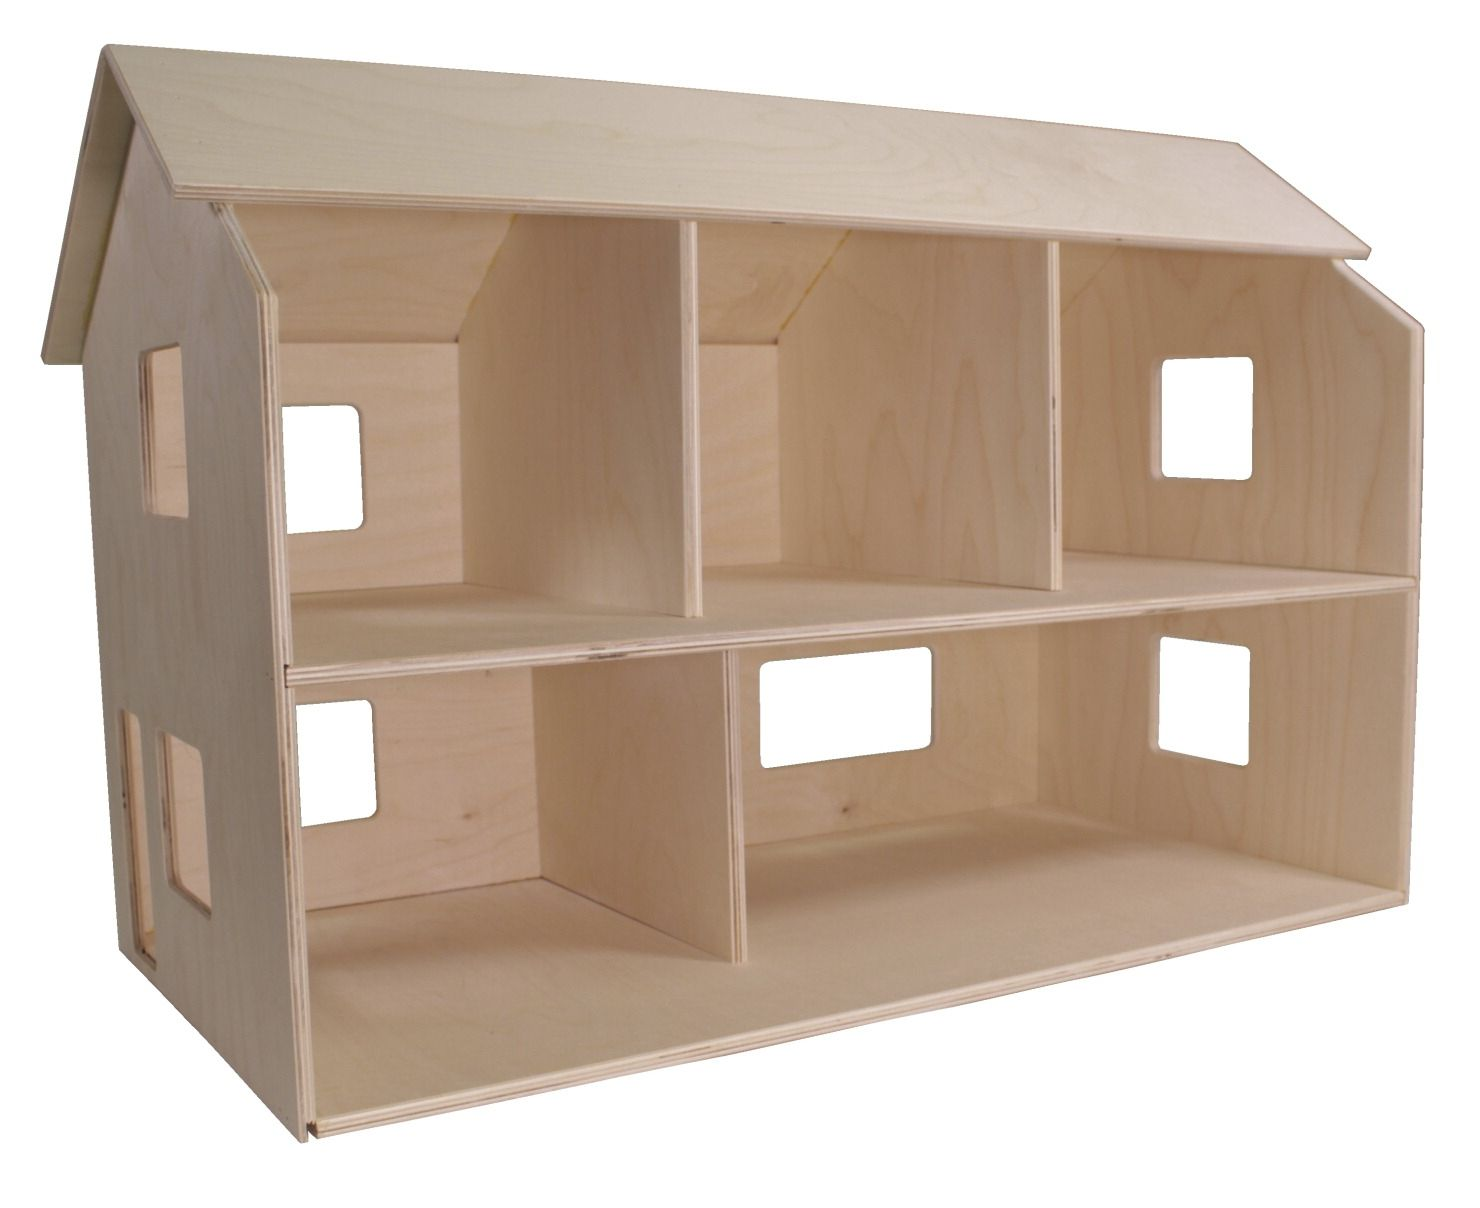 Childcraft Classic Dollhouse Unfinished 29 3 4 X 15 1 2 X 19 1 2